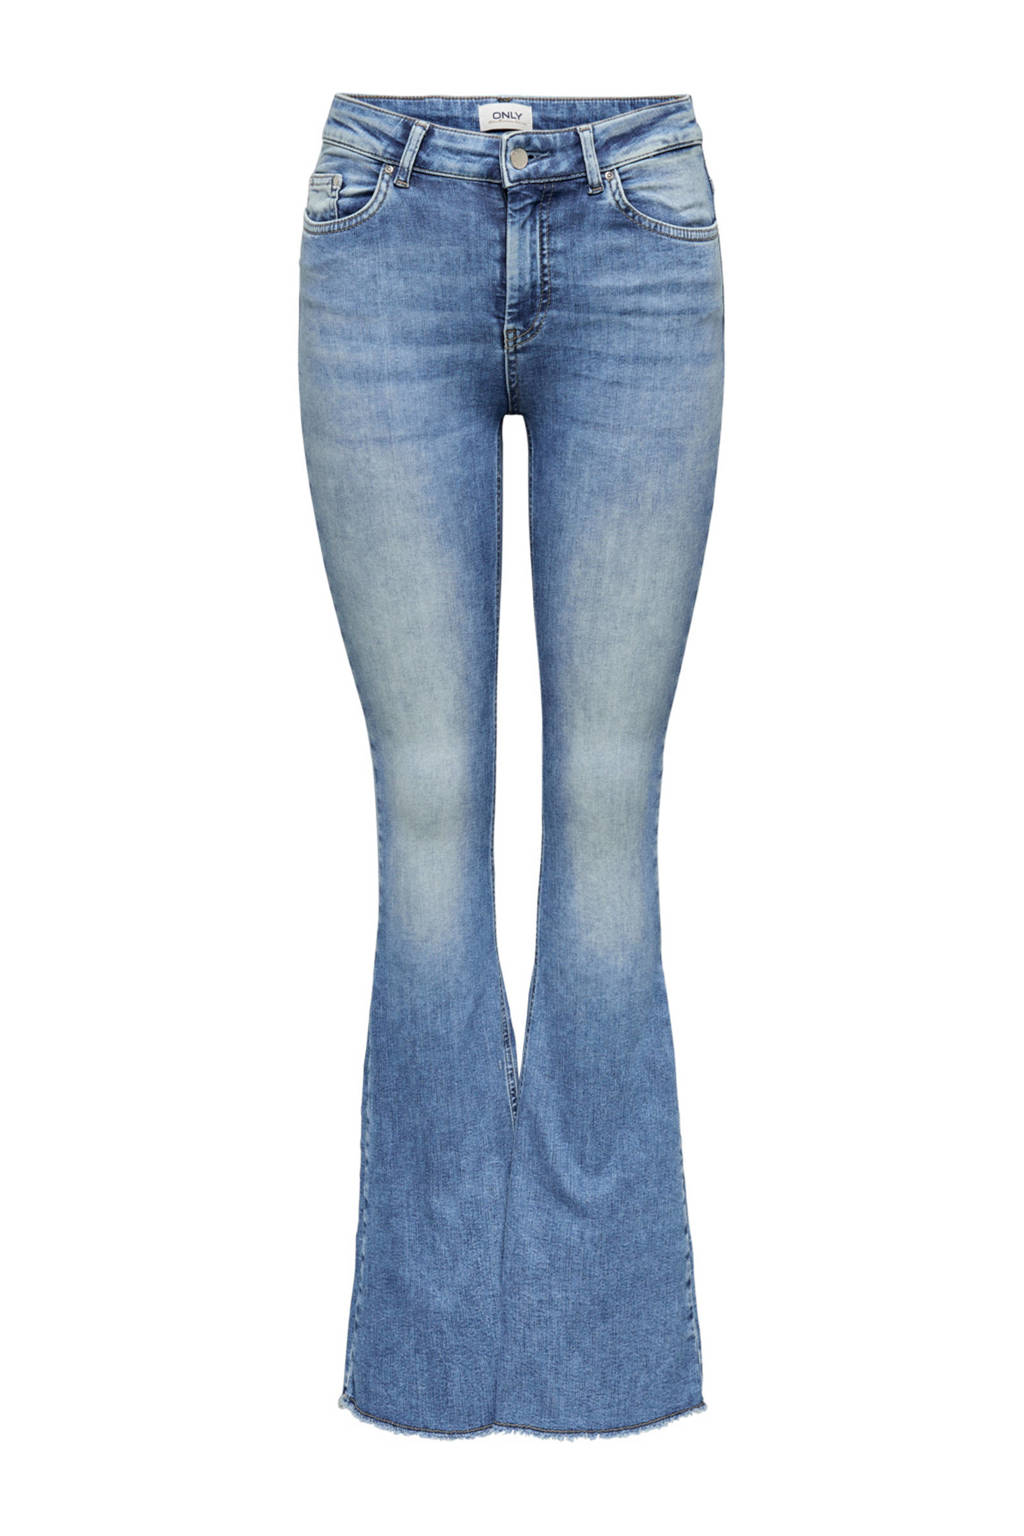 ONLY high waist flared jeans medium blue denim, Medium blue denim